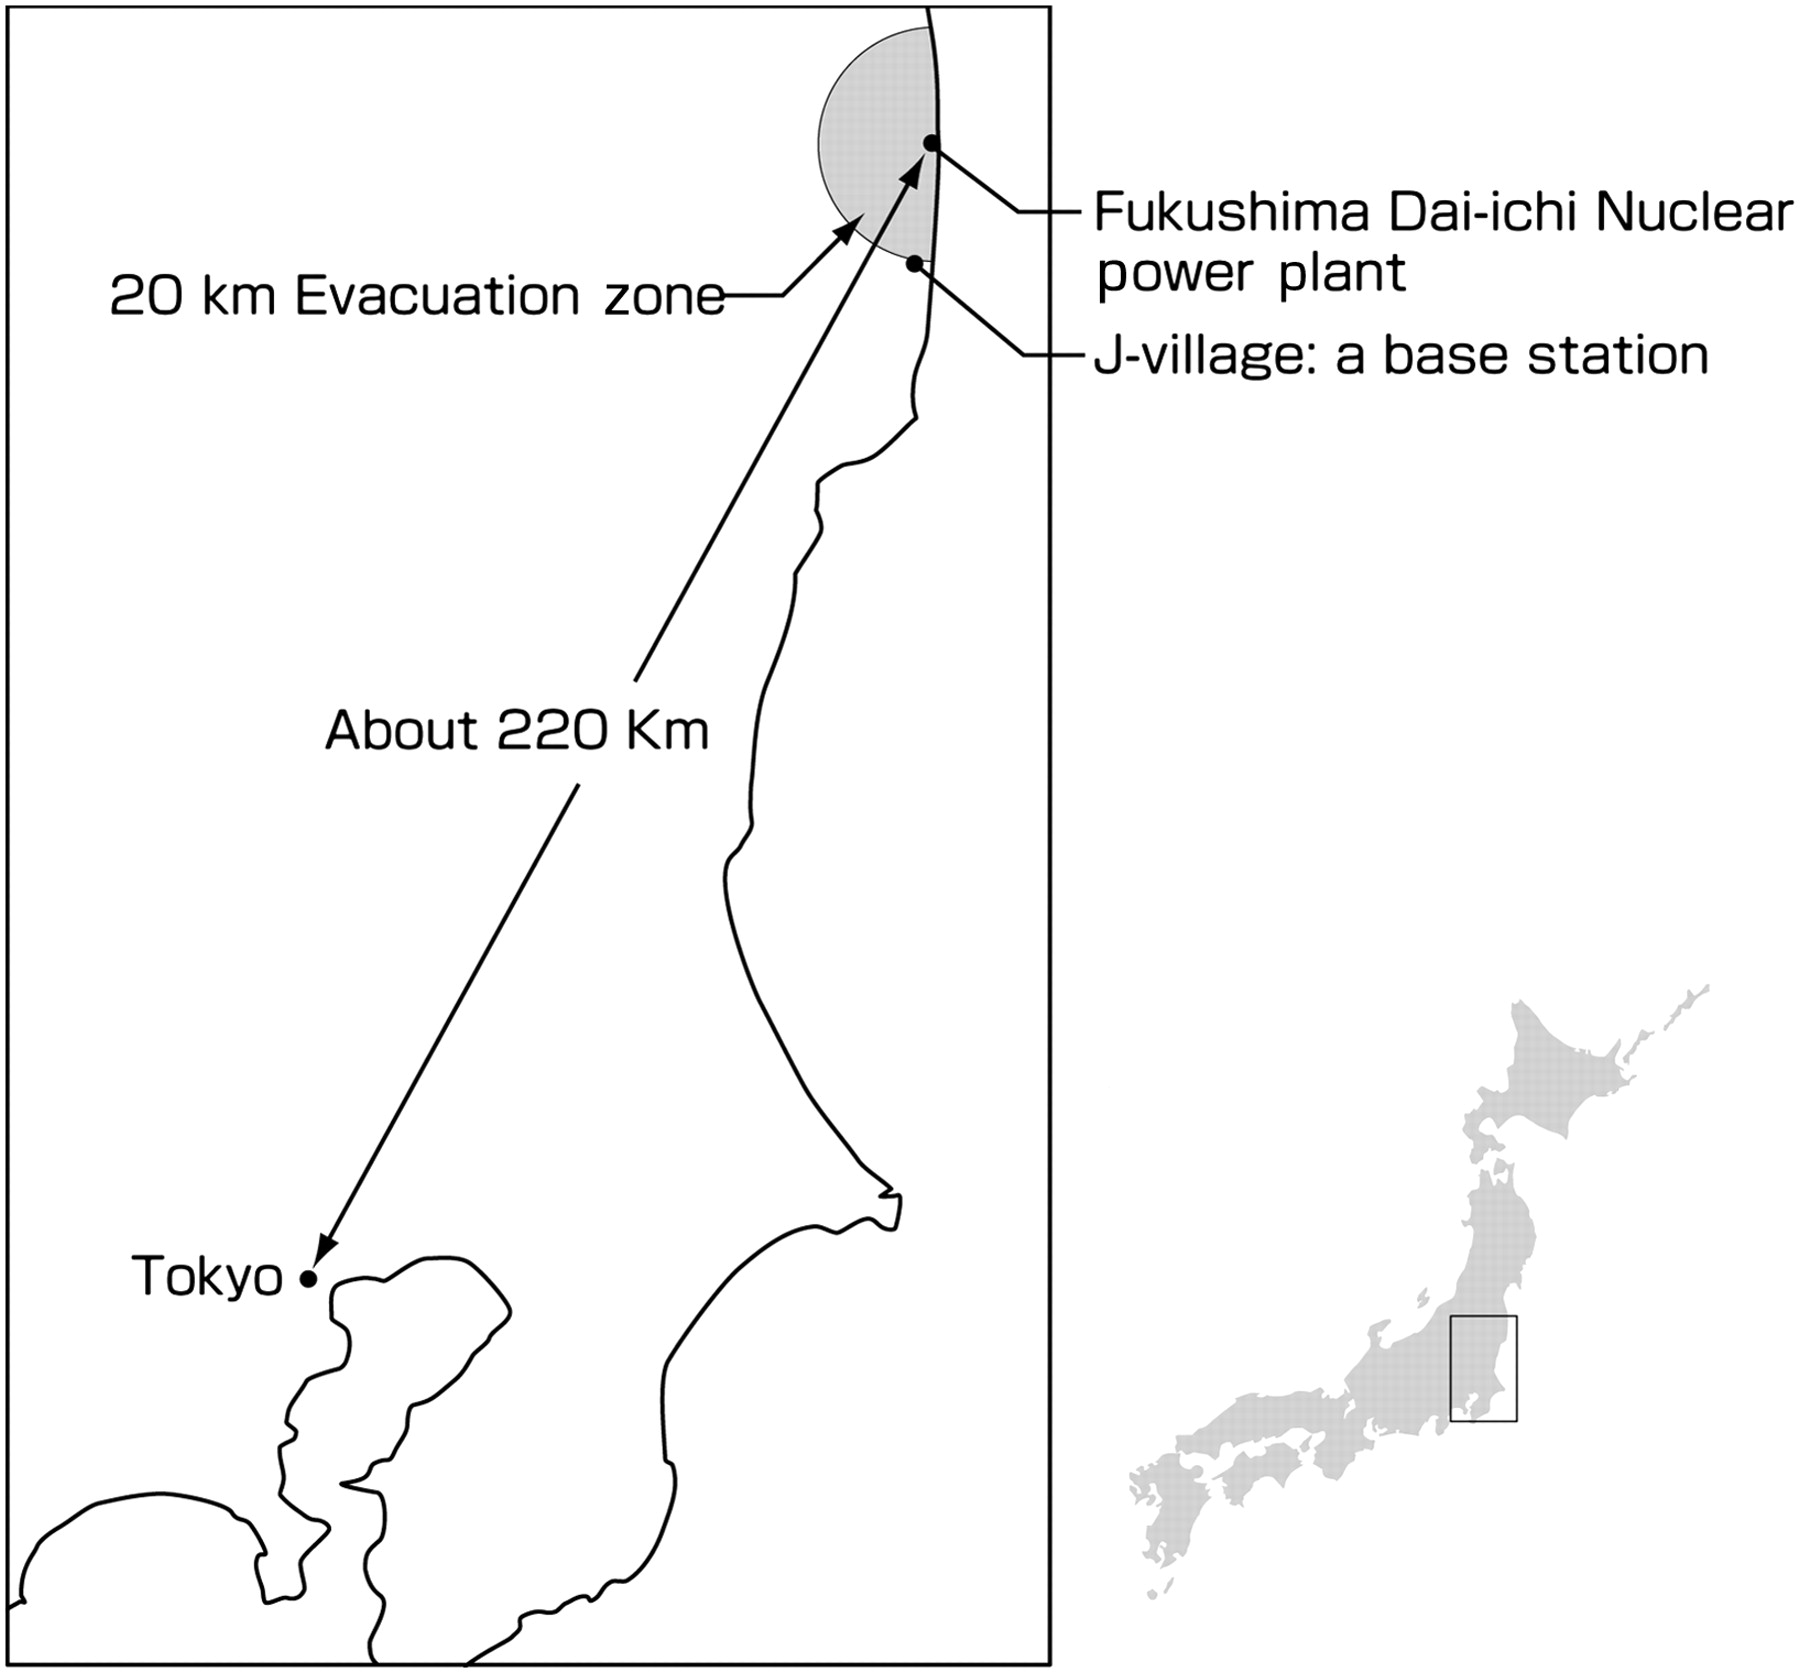 Emergency Response Technical Work At Fukushima Dai Ichi Nuclear Power Plant Diagram And Explanation Download Figure